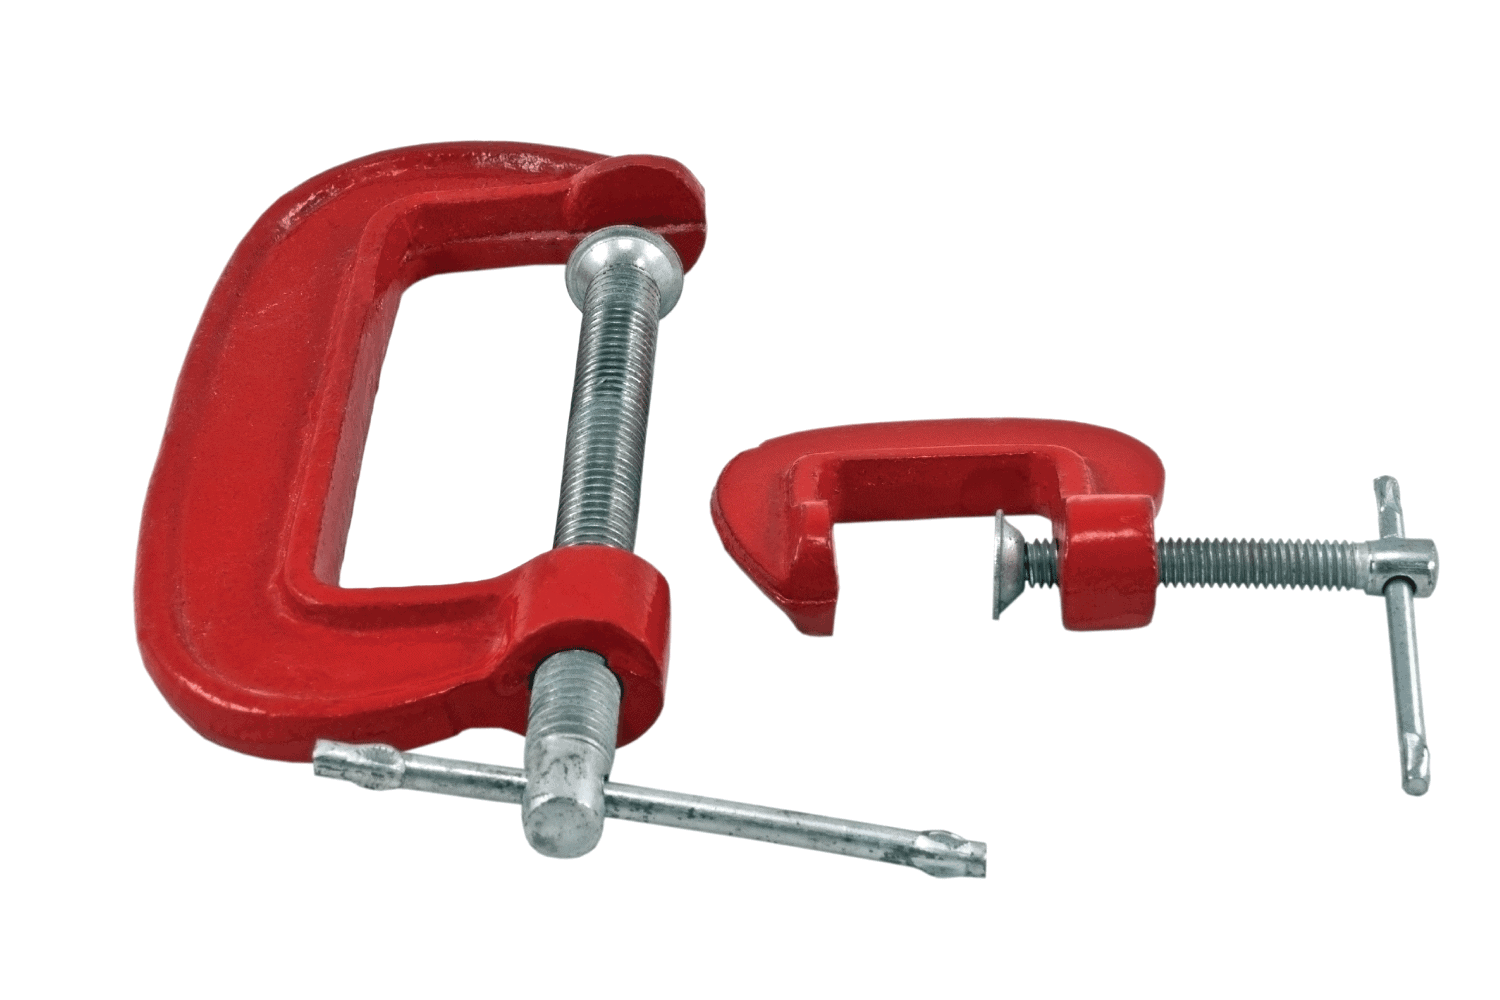 C clamps on white background